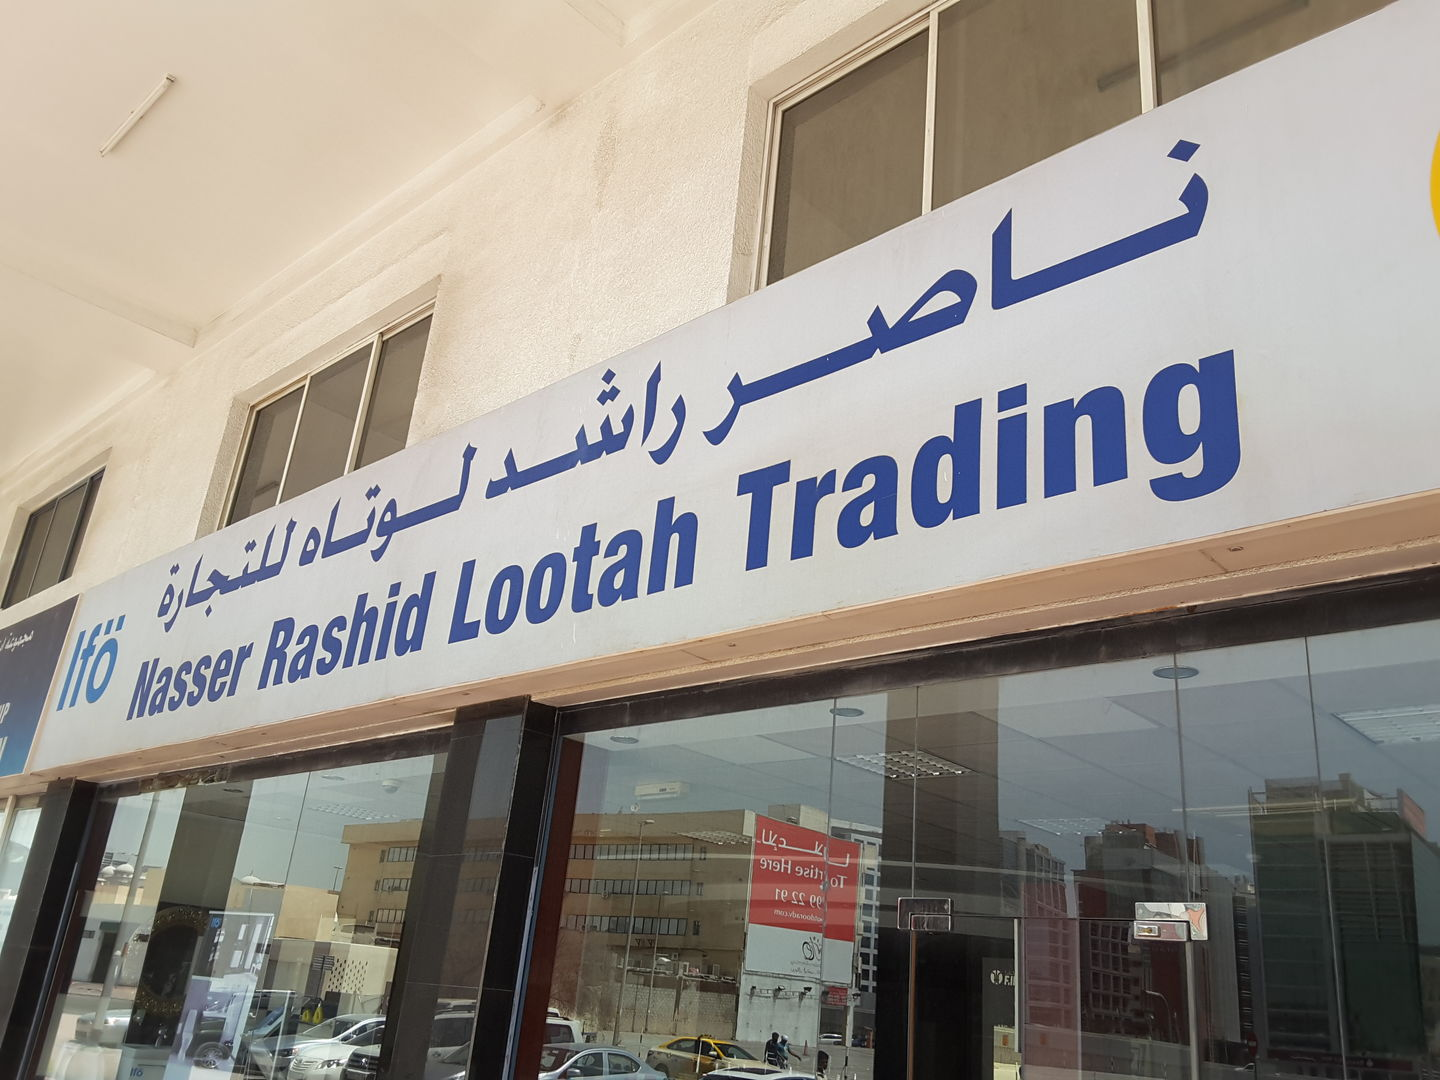 HiDubai-business-nasser-rashid-lootah-trading-home-hardware-fittings-al-garhoud-dubai-2